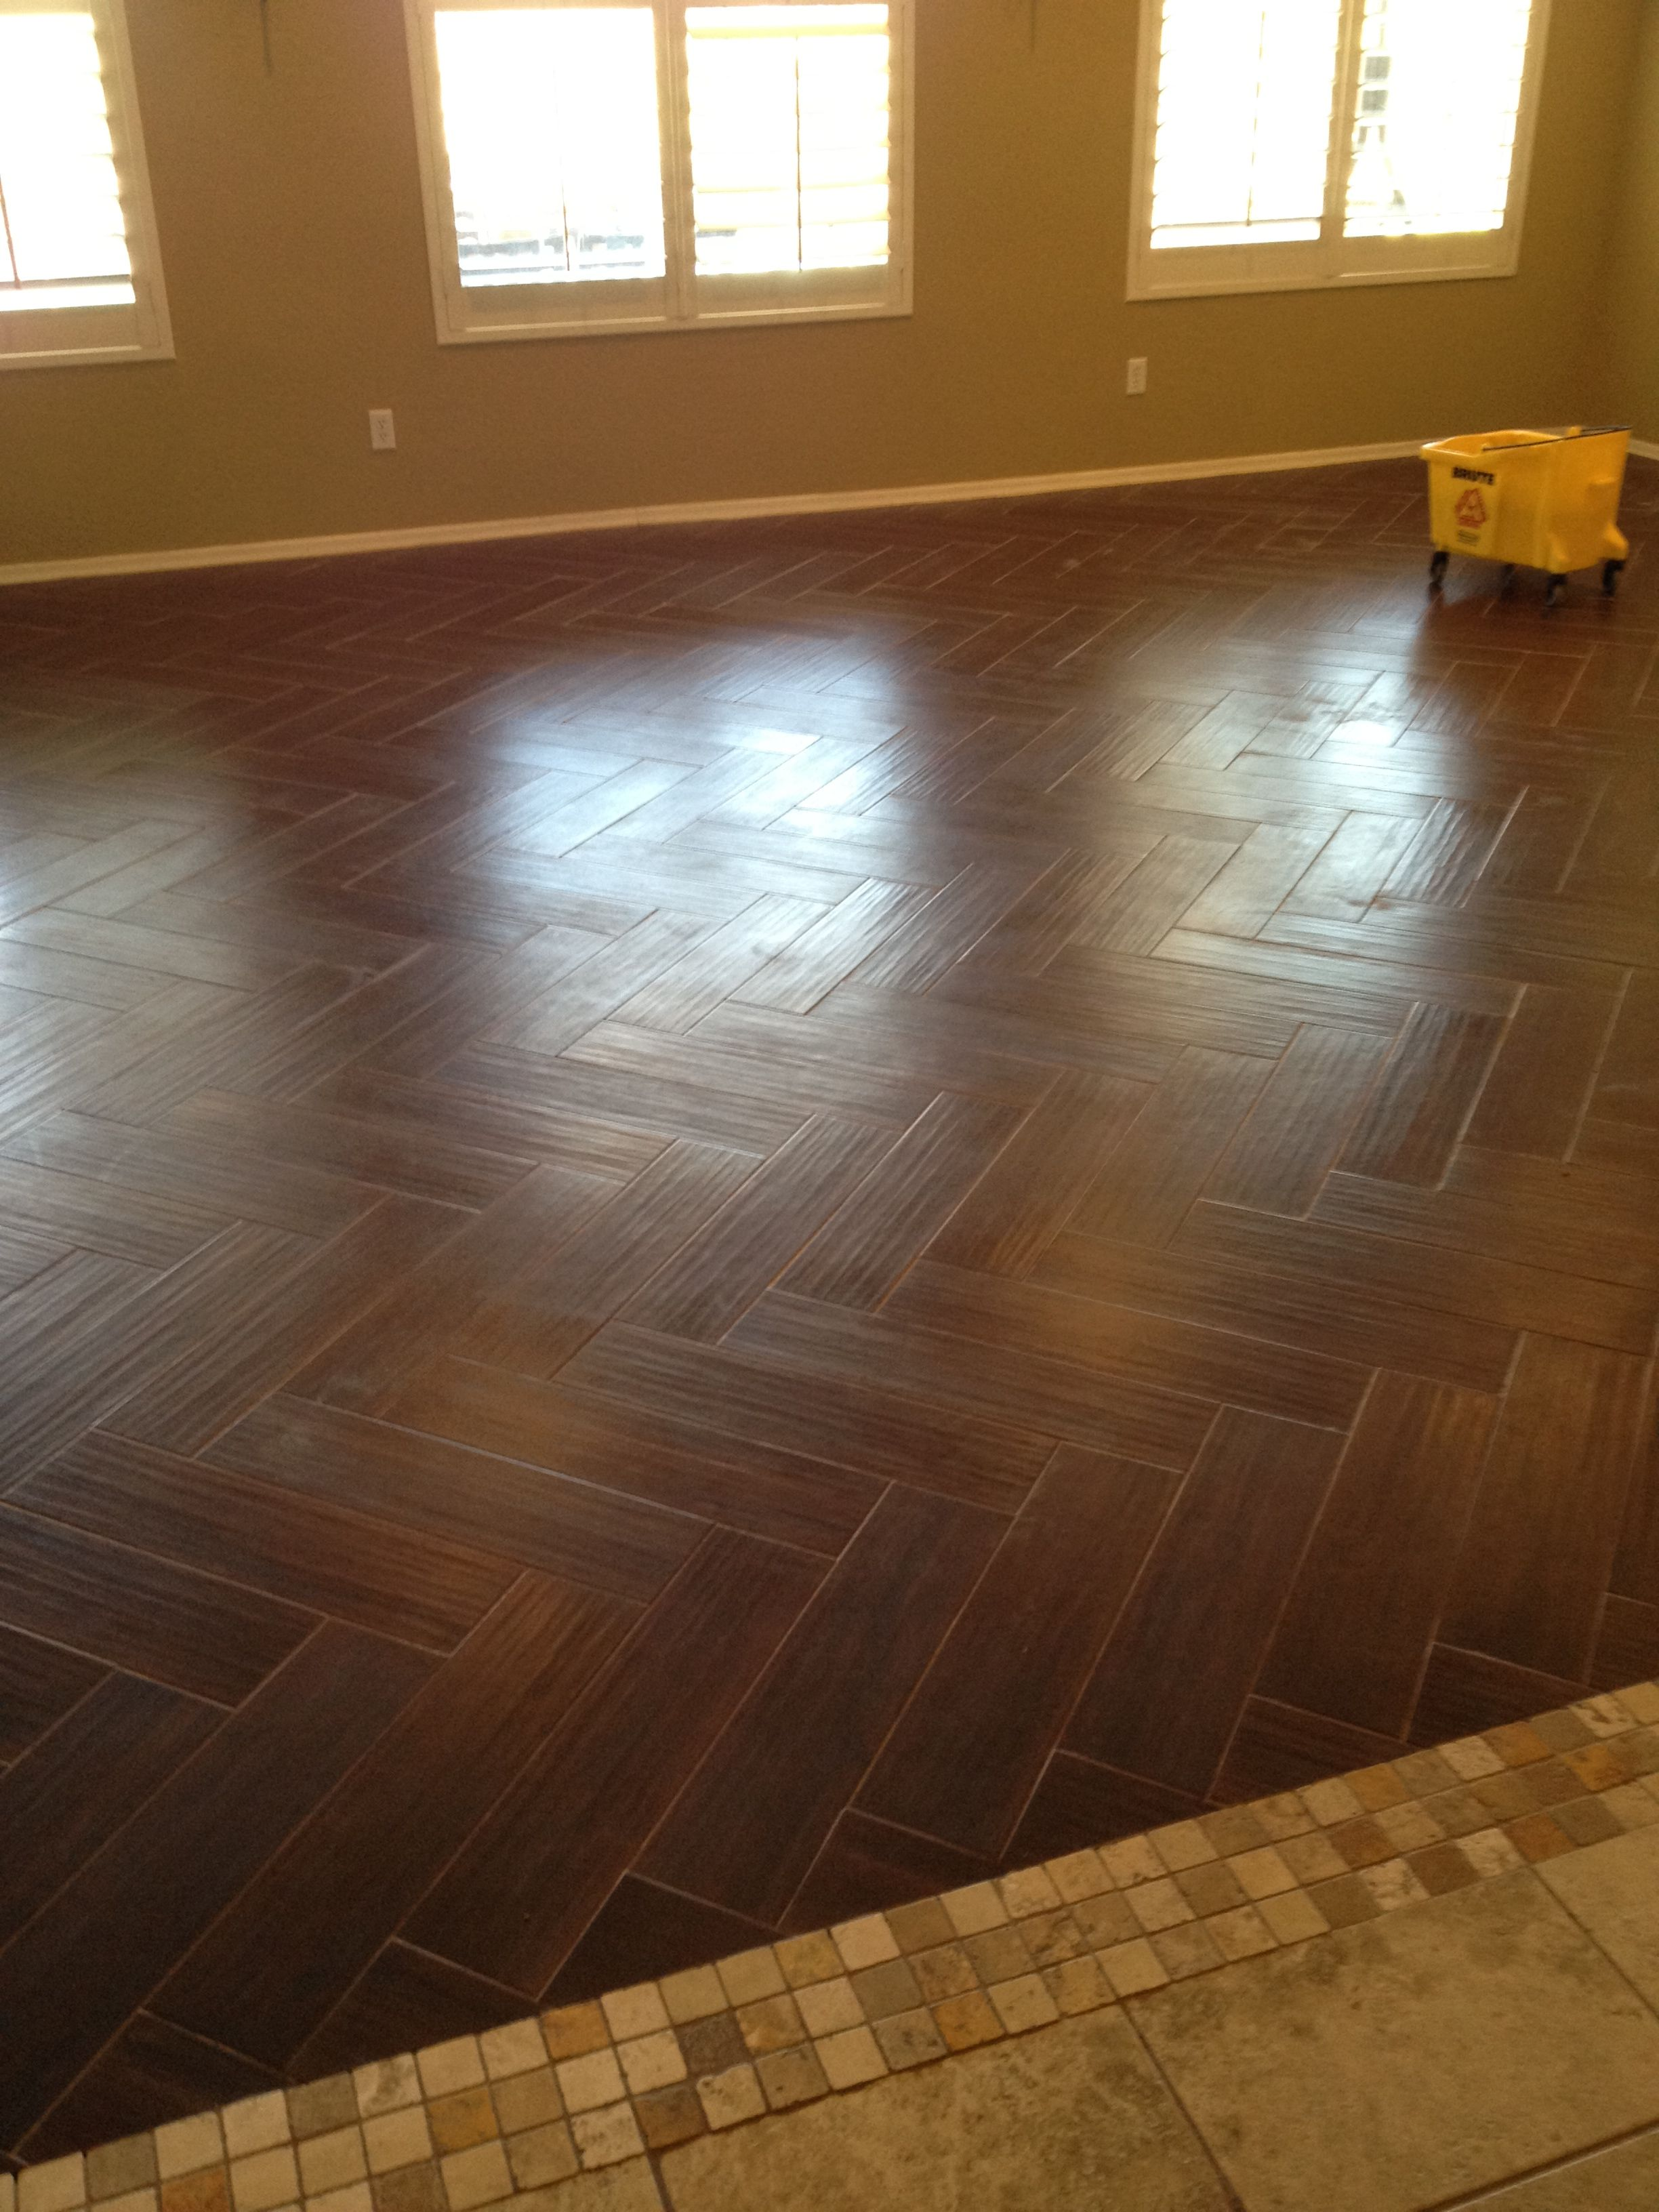 Porcelain Tile That Looks Like Hardwood Floors Update Living Room Is Done Moving On To The